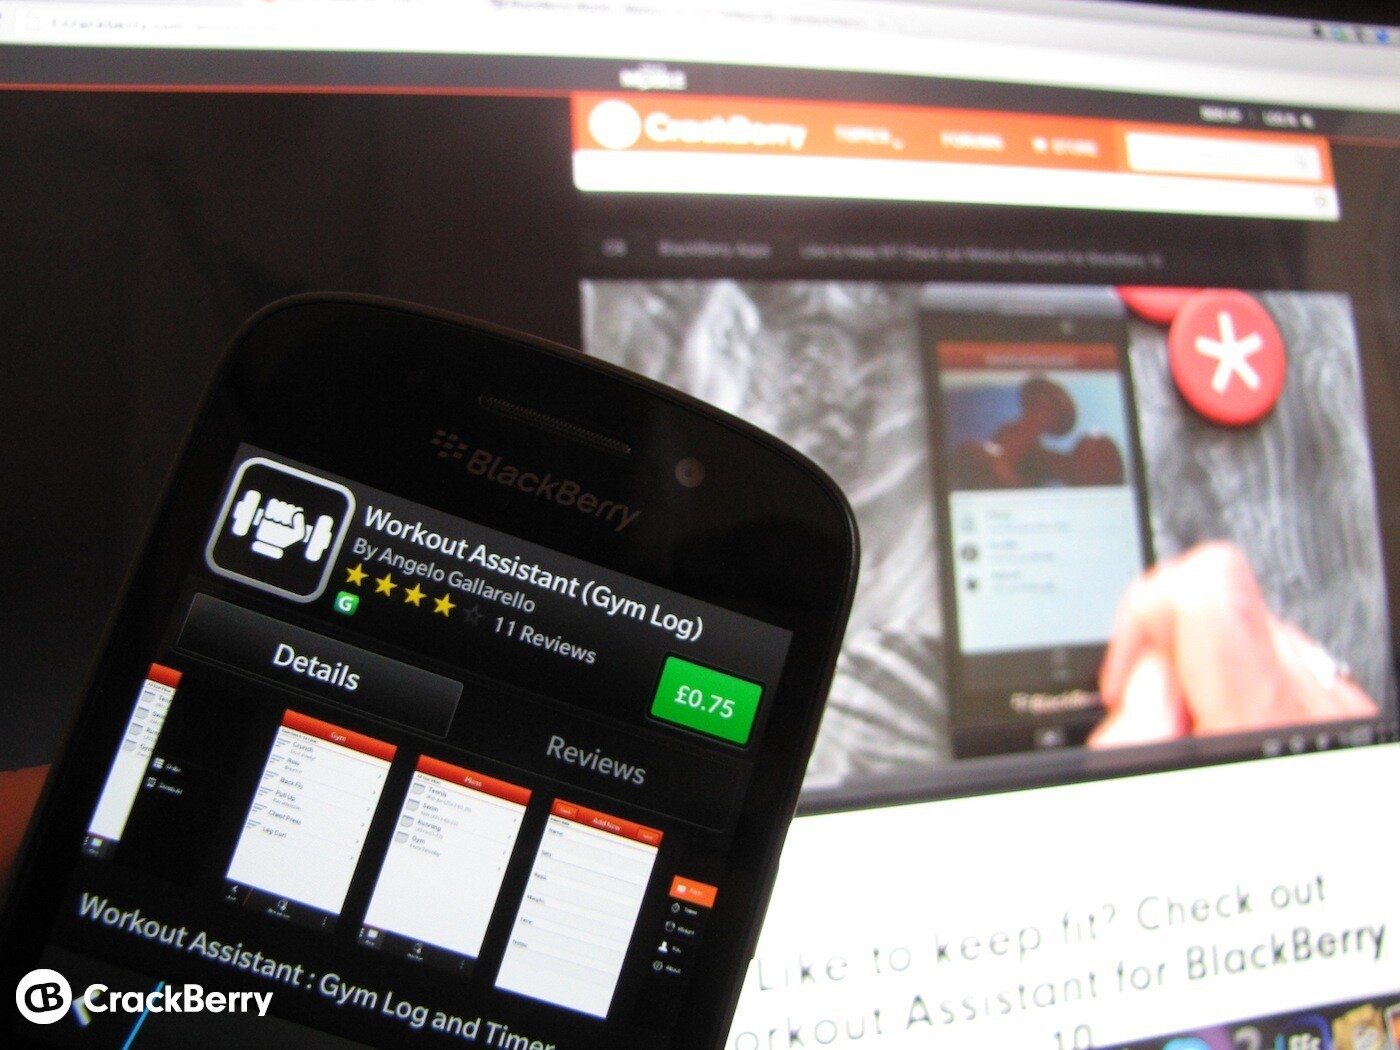 Workout Assistant for BlackBerry 10